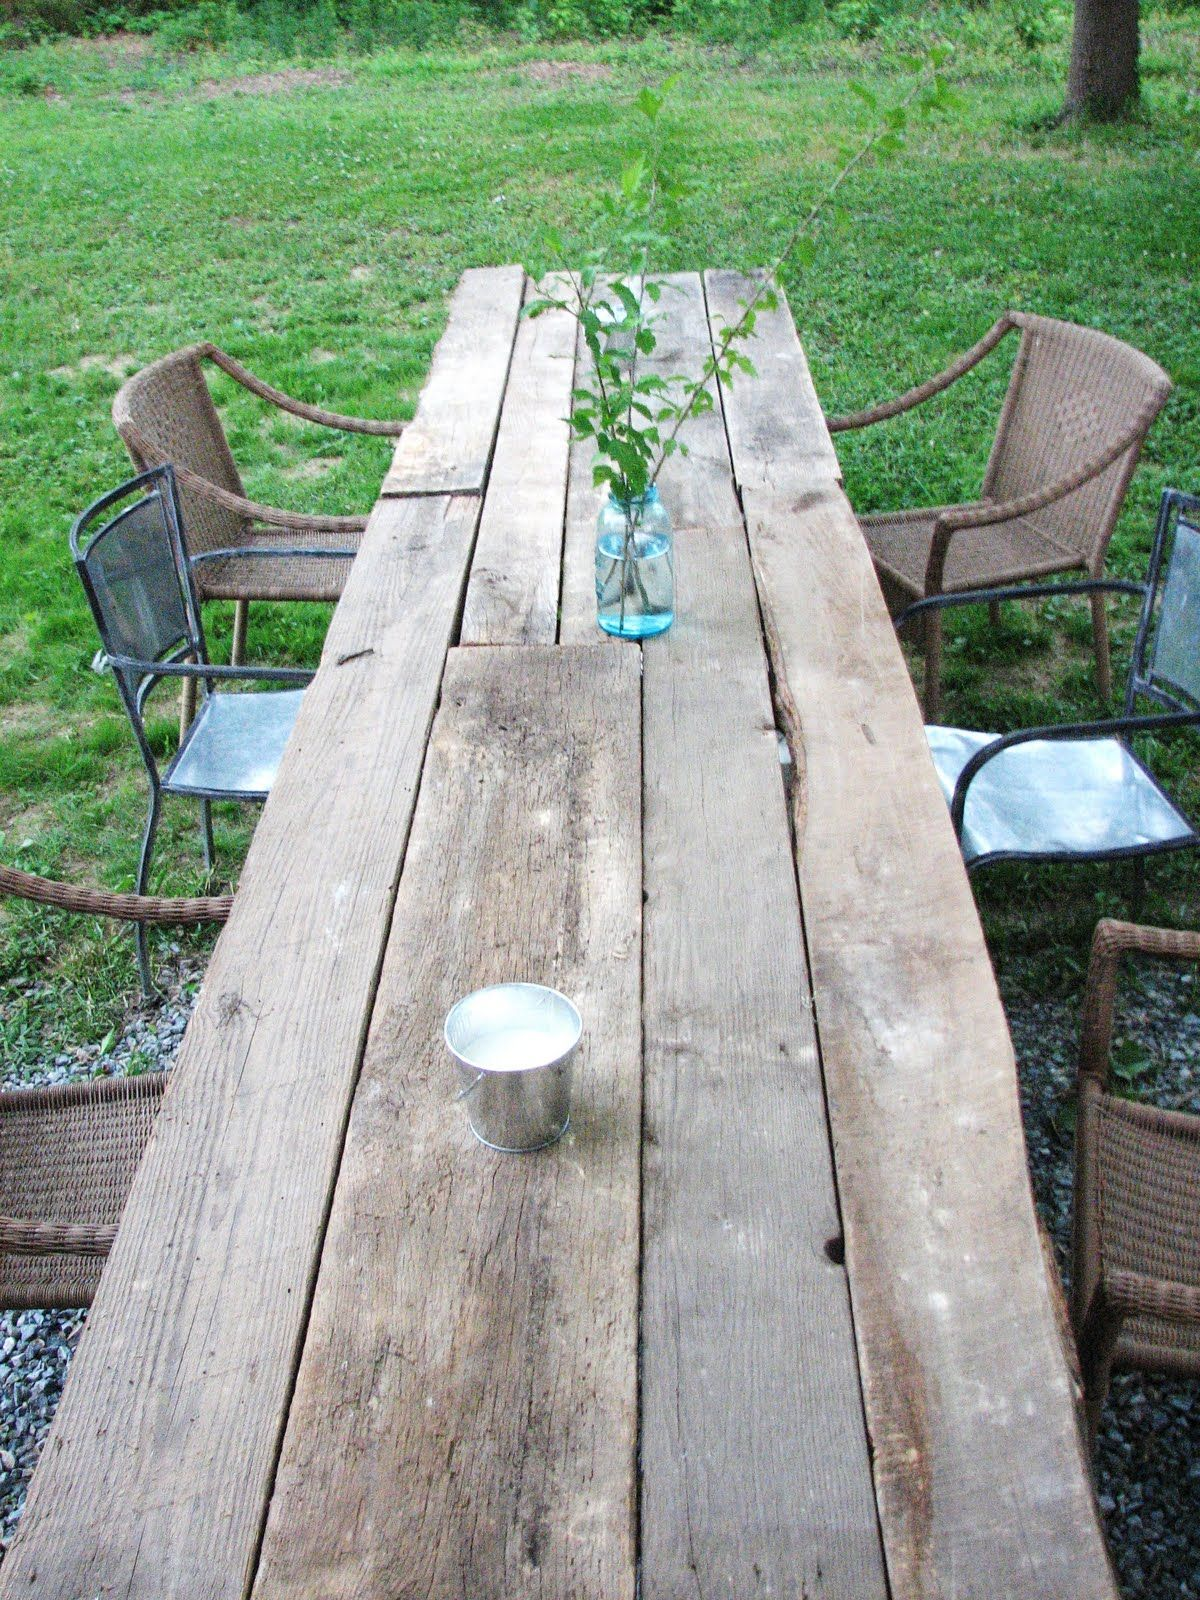 I Would Love To Make A Table Like This From Barn Wood. Instead Of Chairs